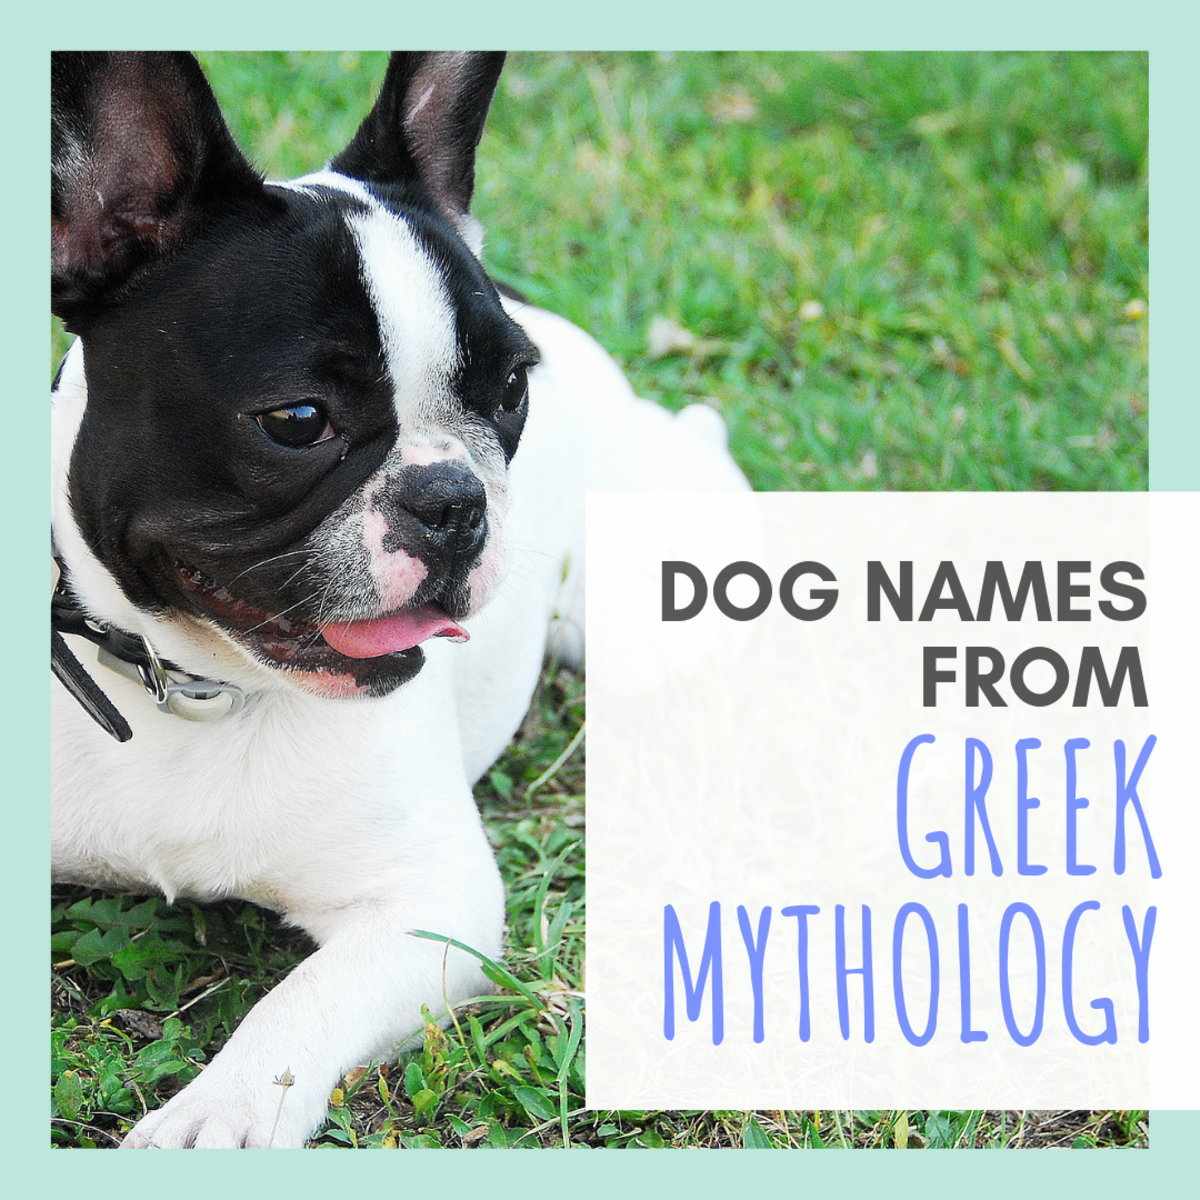 15 Names for Your Dog Based on Greek Mythology